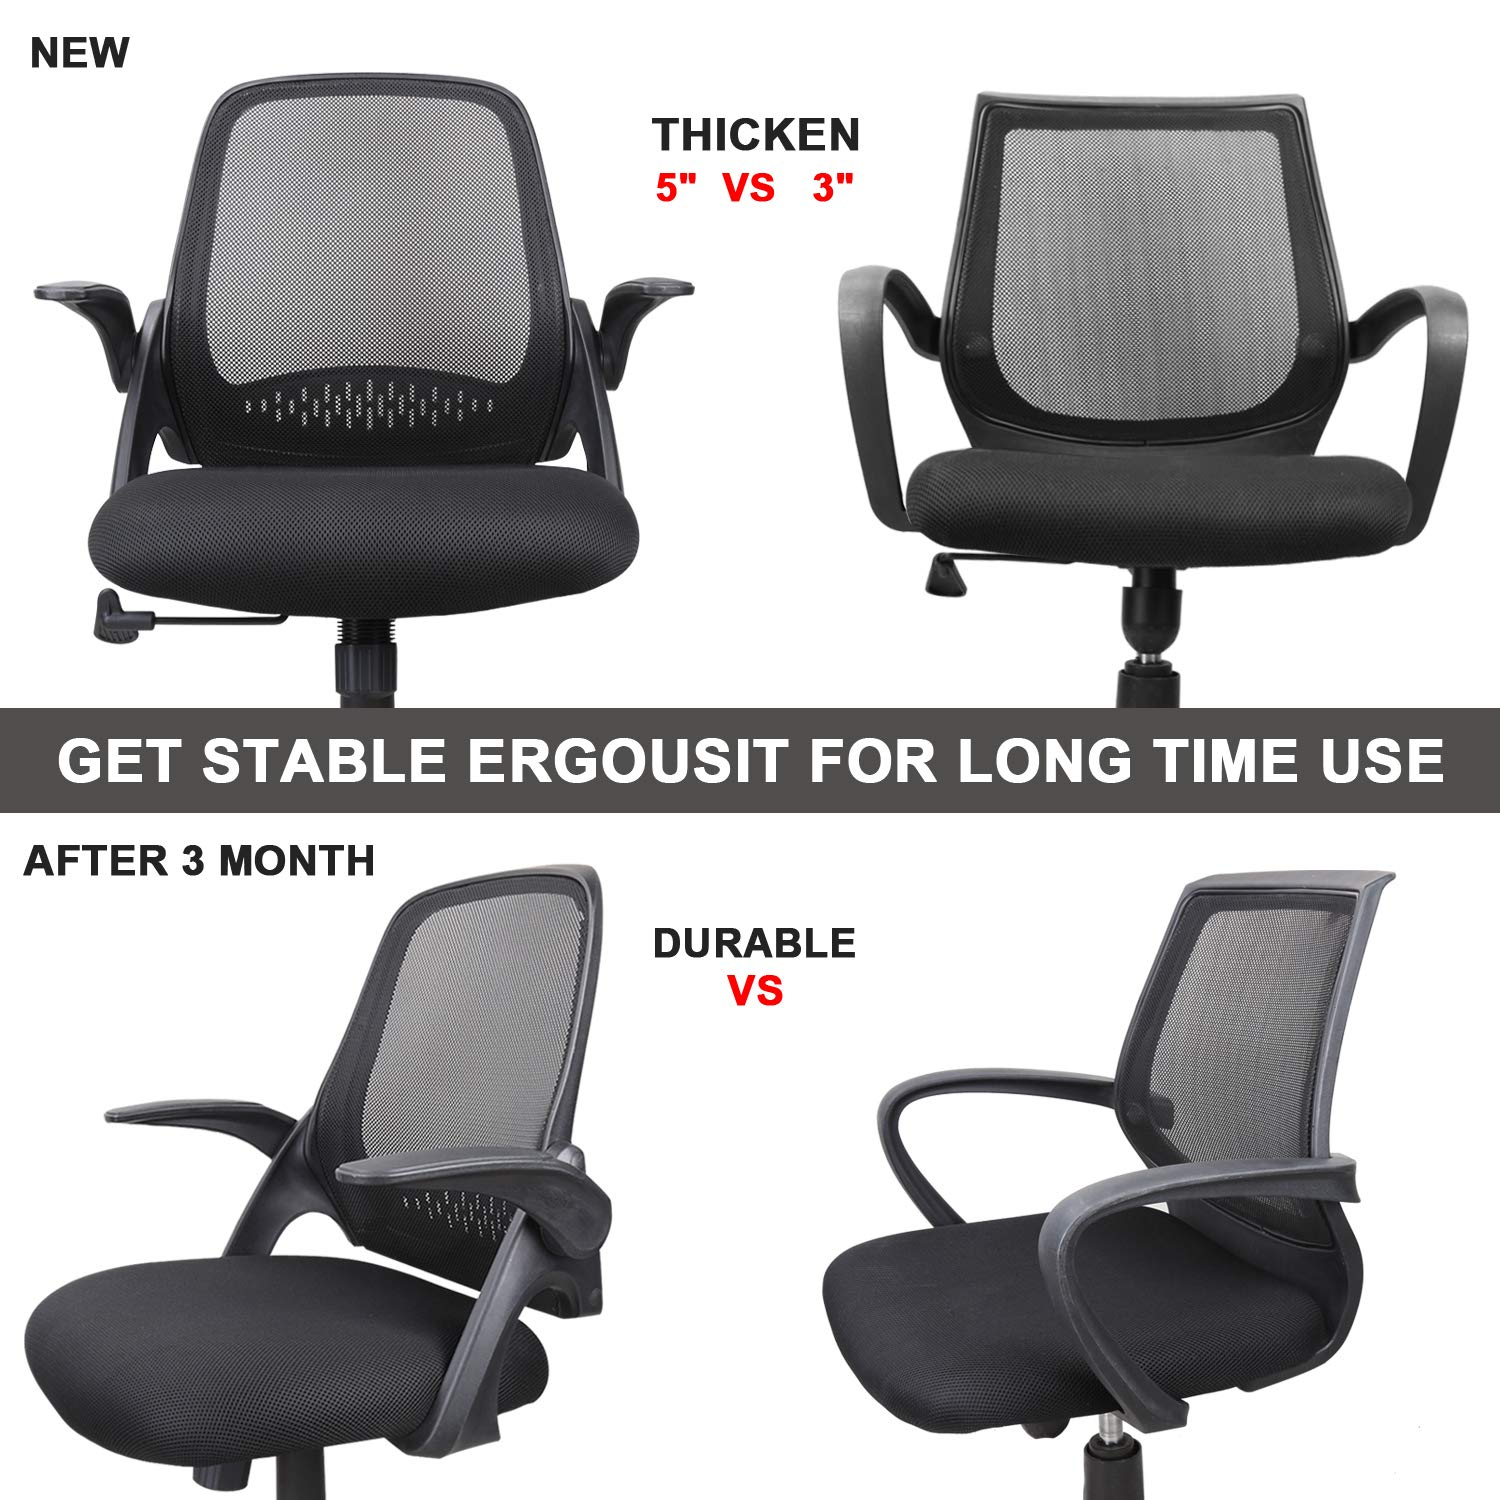 Ergousit Mid-Back Mesh Office Chair, Ergonomic Desk Chairs Swivel Computer Task Chairs with Adjustable Height and Flip-up Armrest - Lumbar Support and Sponge Cushion in Black (Black) by Ergousit (Image #4)